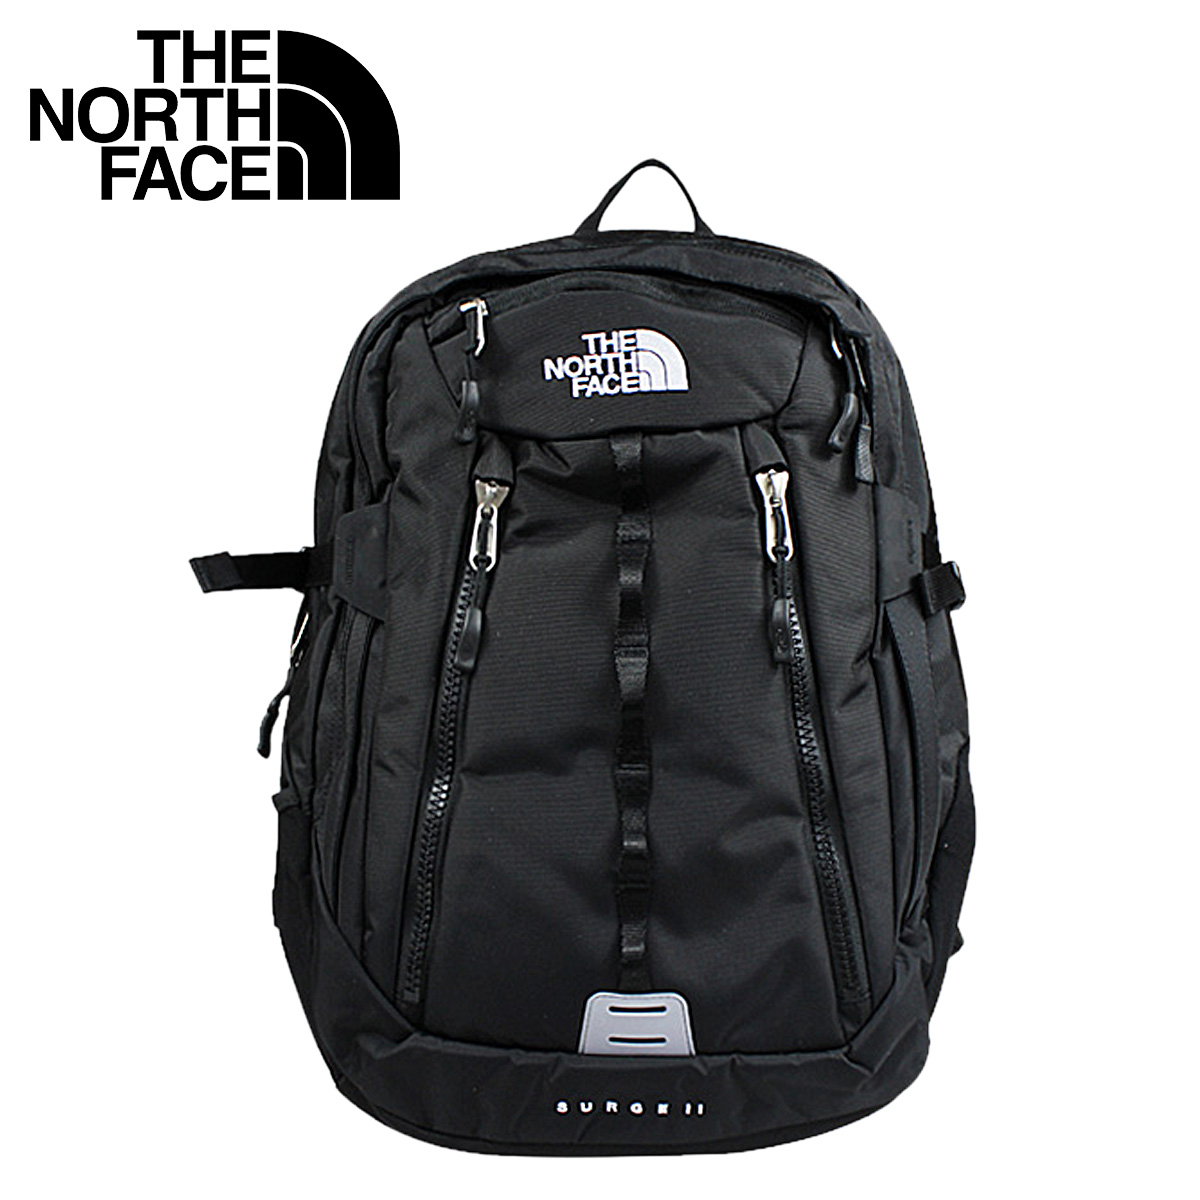 be15b502a The North face THE NORTH FACE Lady's backpack rucksack [black] WOMEN'S  SURGE ll BACKPACK A92R [regular] fs04gm 05P06May14